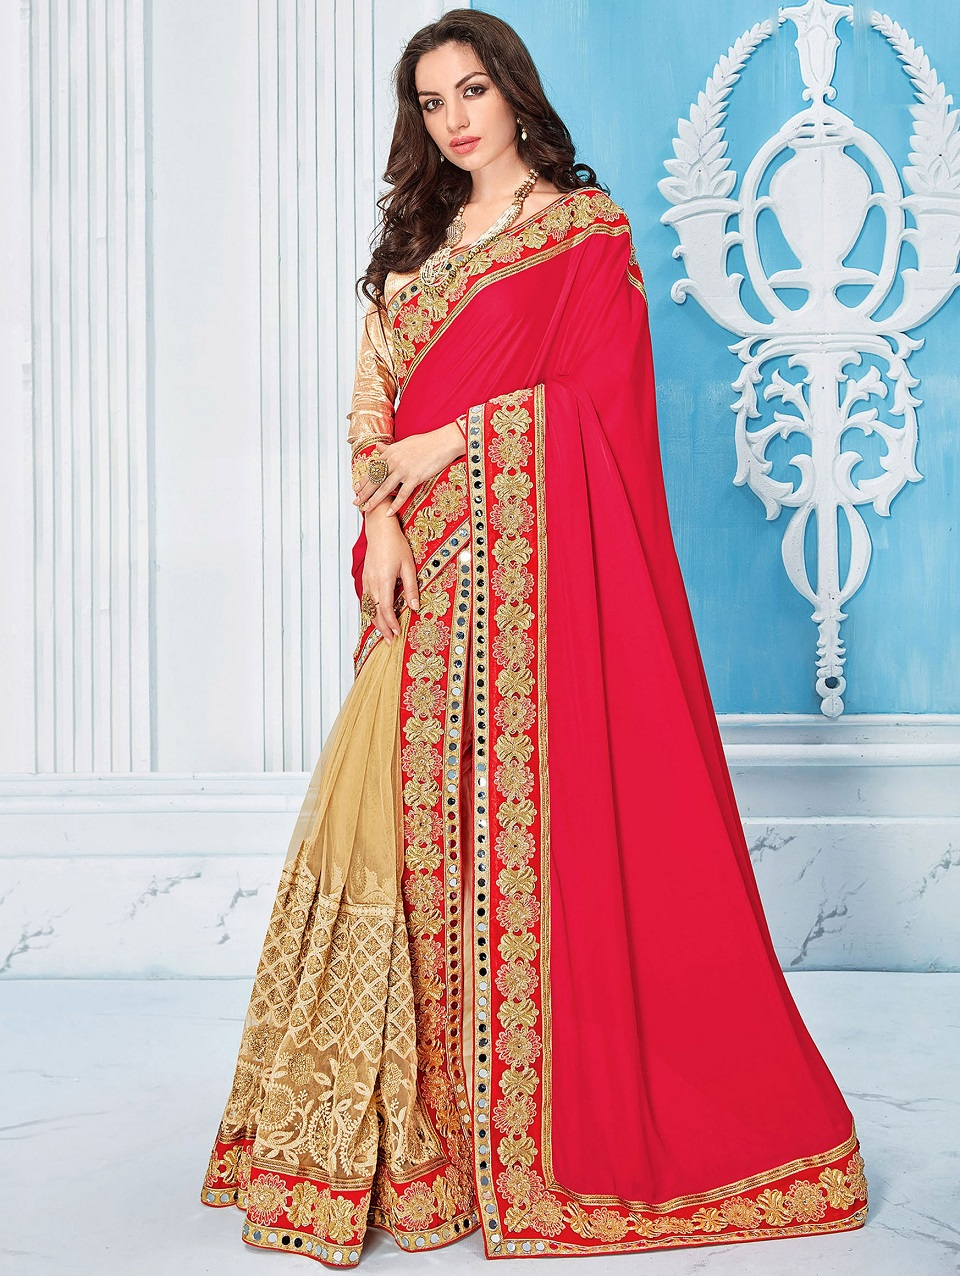 bdd0018ff4 Indian Wedding Saree Latest Designs & Trends 2019-2029 Collection